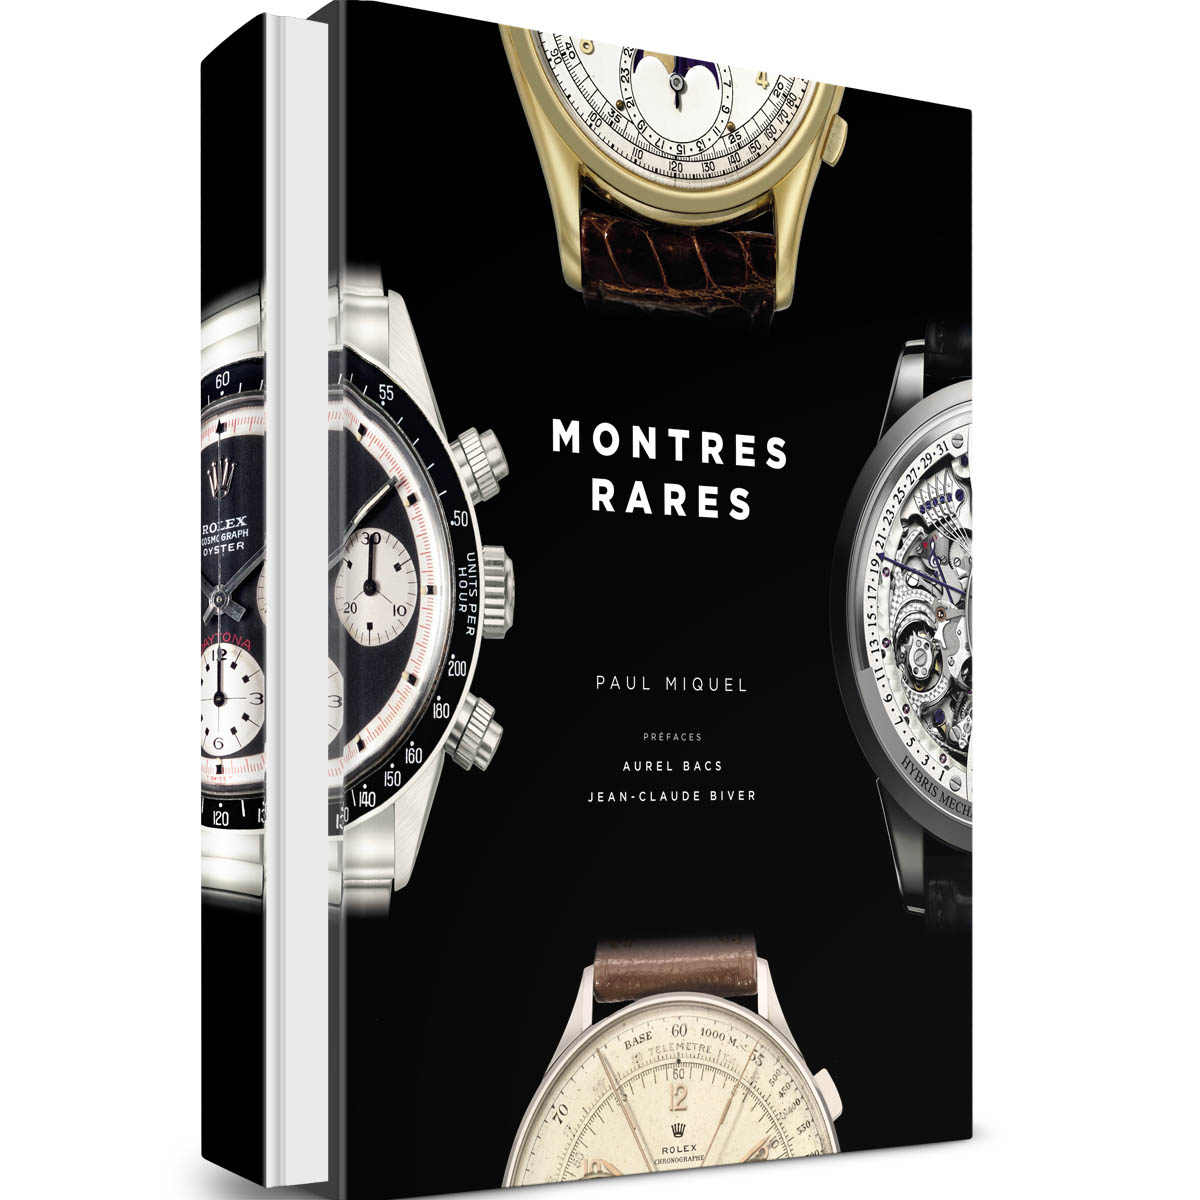 La Cote des Montres : Photo - Montres rares par Paul Miquel, la collection impossible